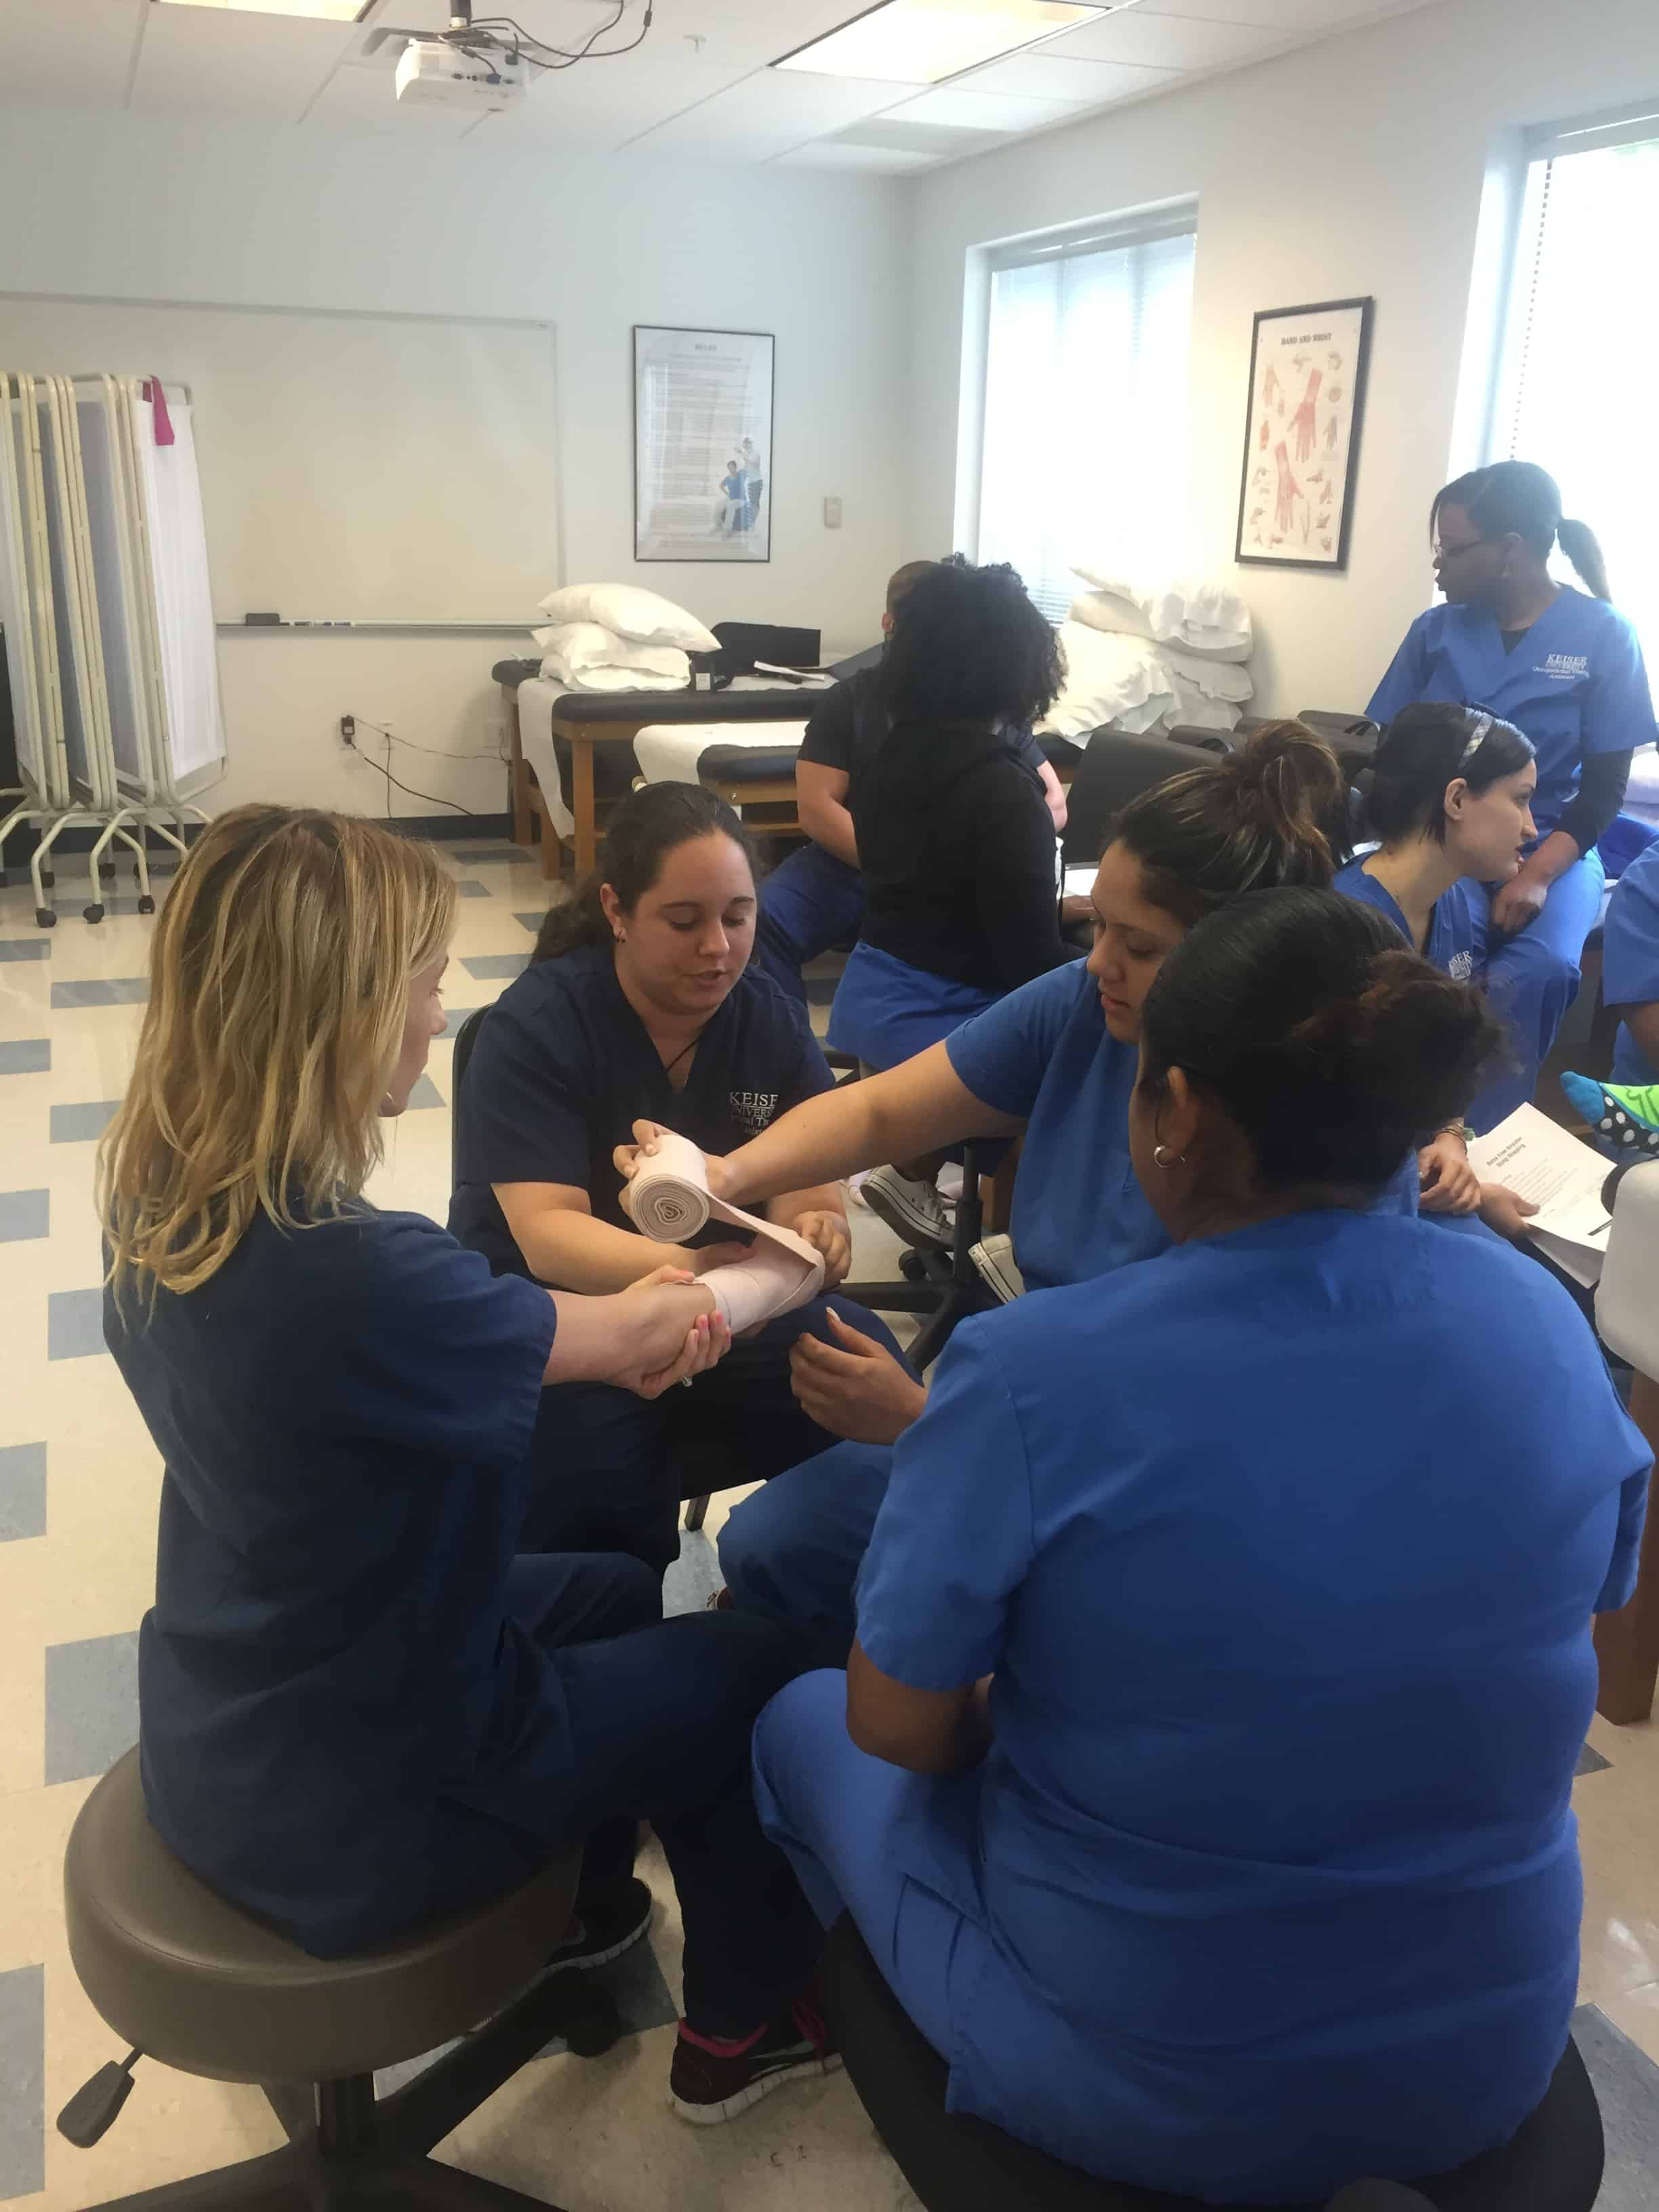 Physical Therapy Assistant & Occupational Therapy Assistant Students Learn From One Another